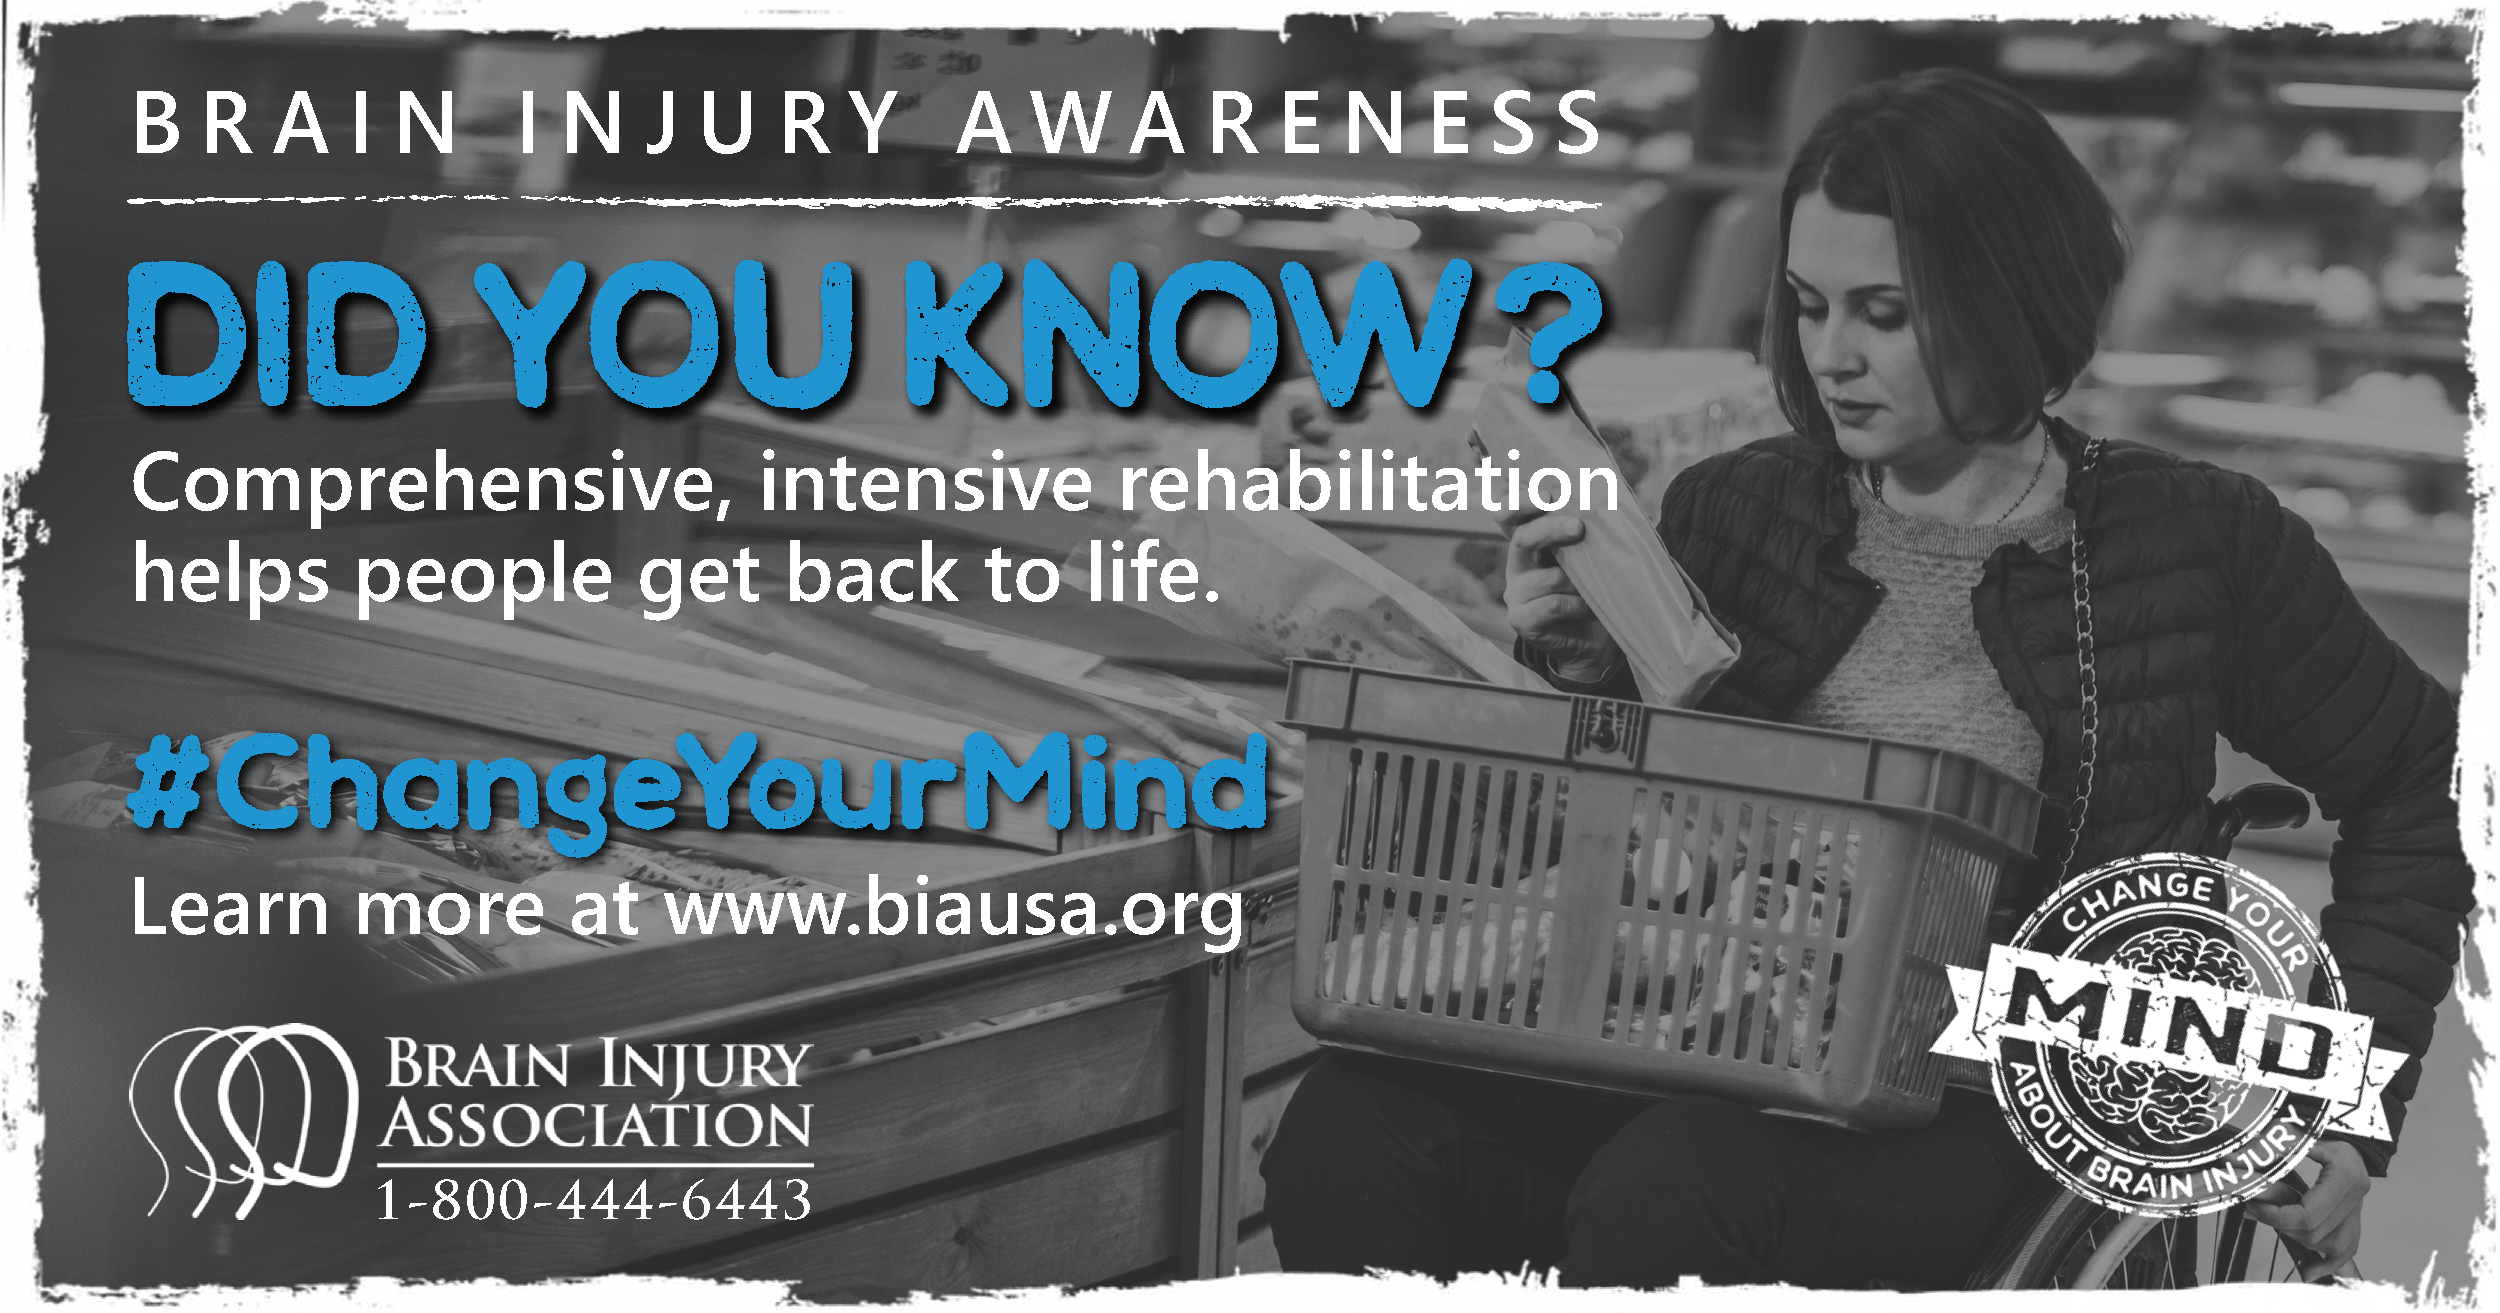 Comprehensive, intensive rehabilitation helps people get back to life after brain injury.